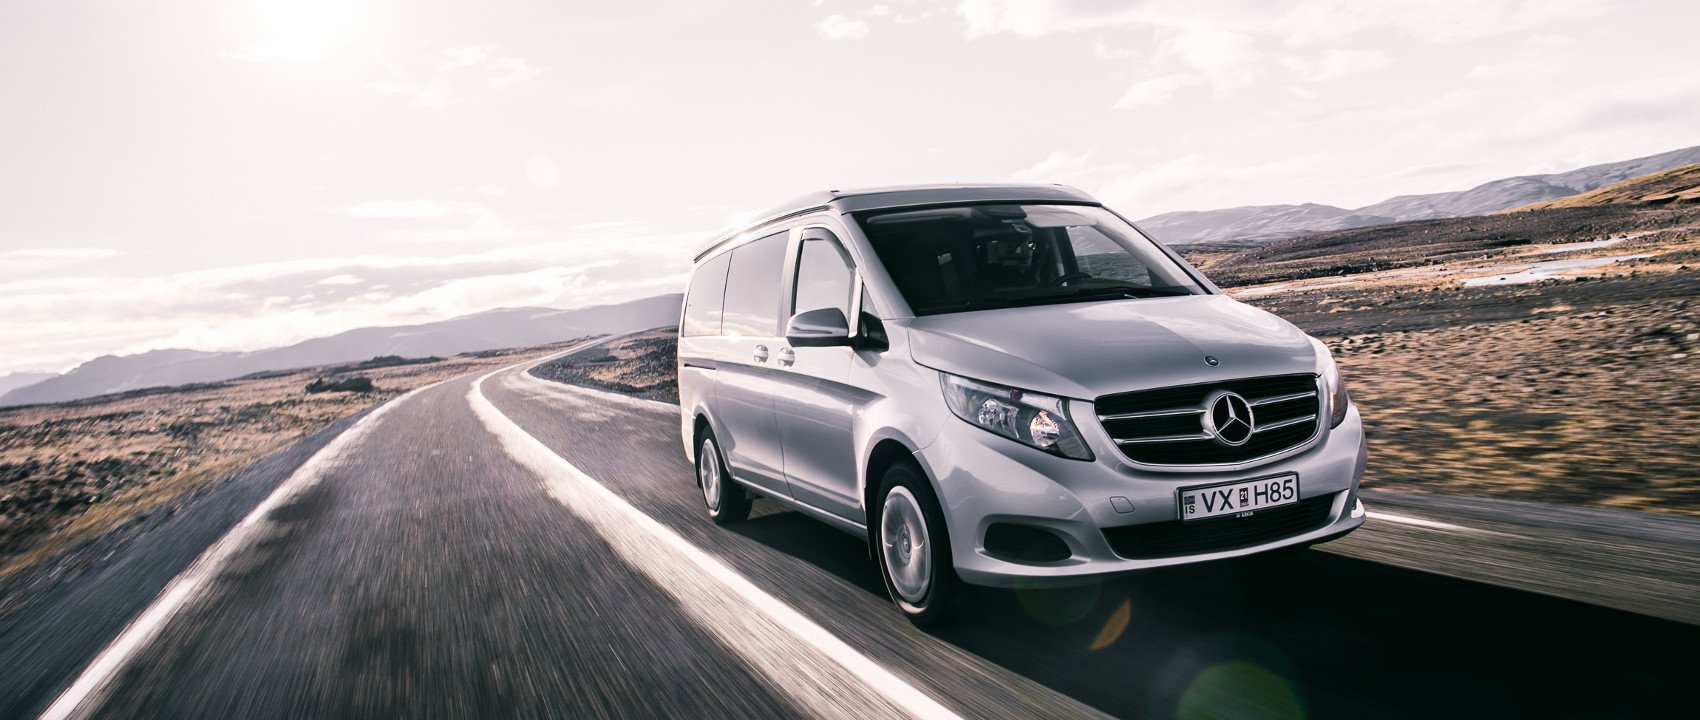 Mercedes-Benz #MBvideocar: Marco Polo auf Island.